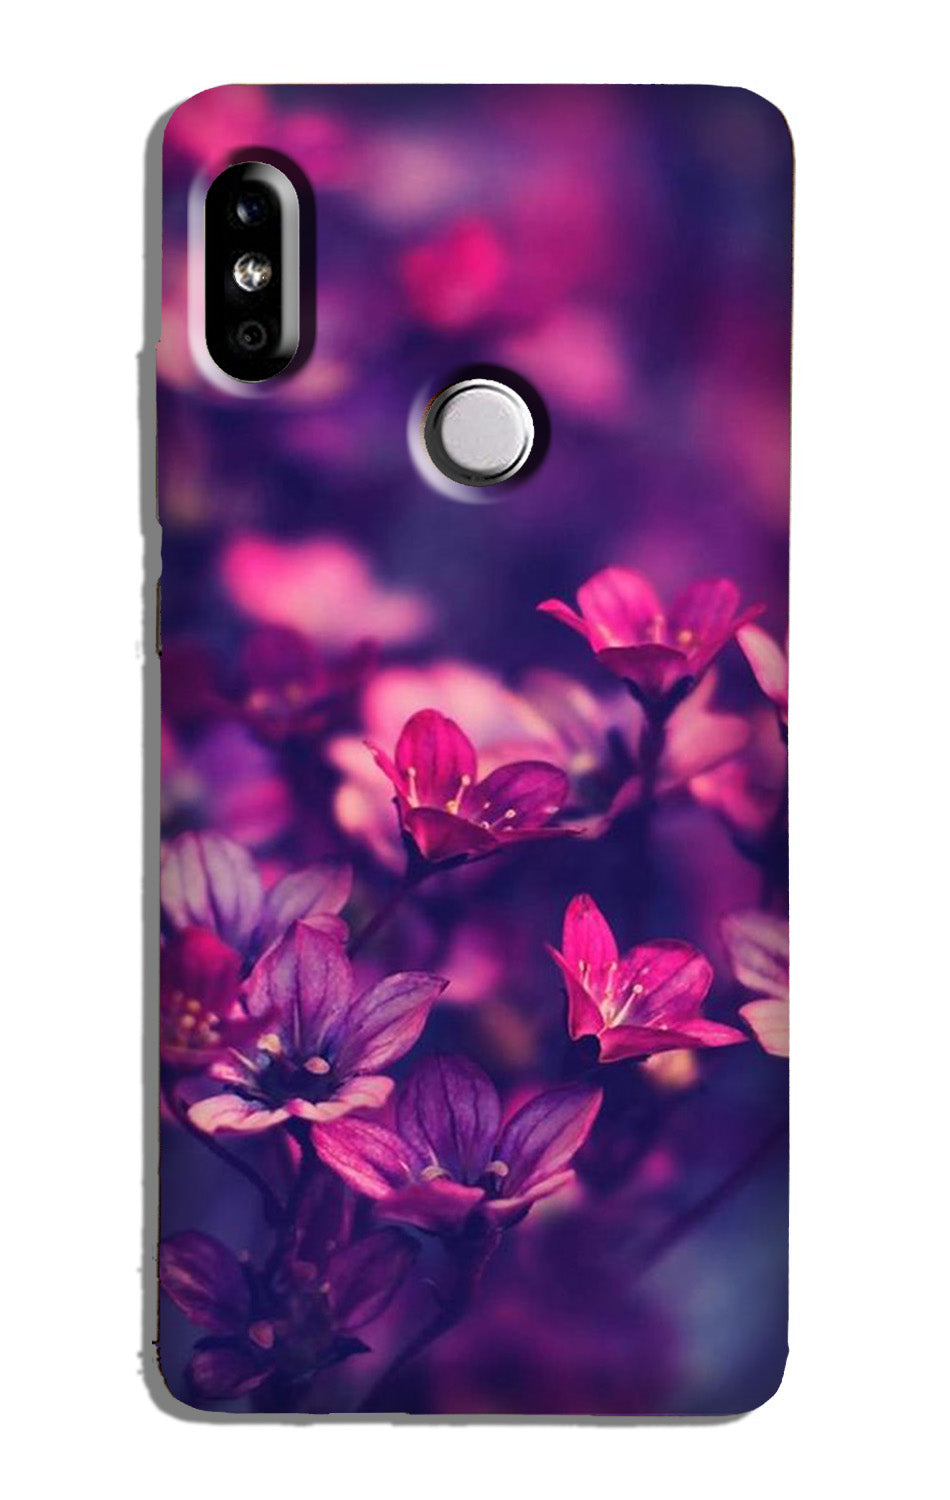 flowers Case for Redmi 6 Pro